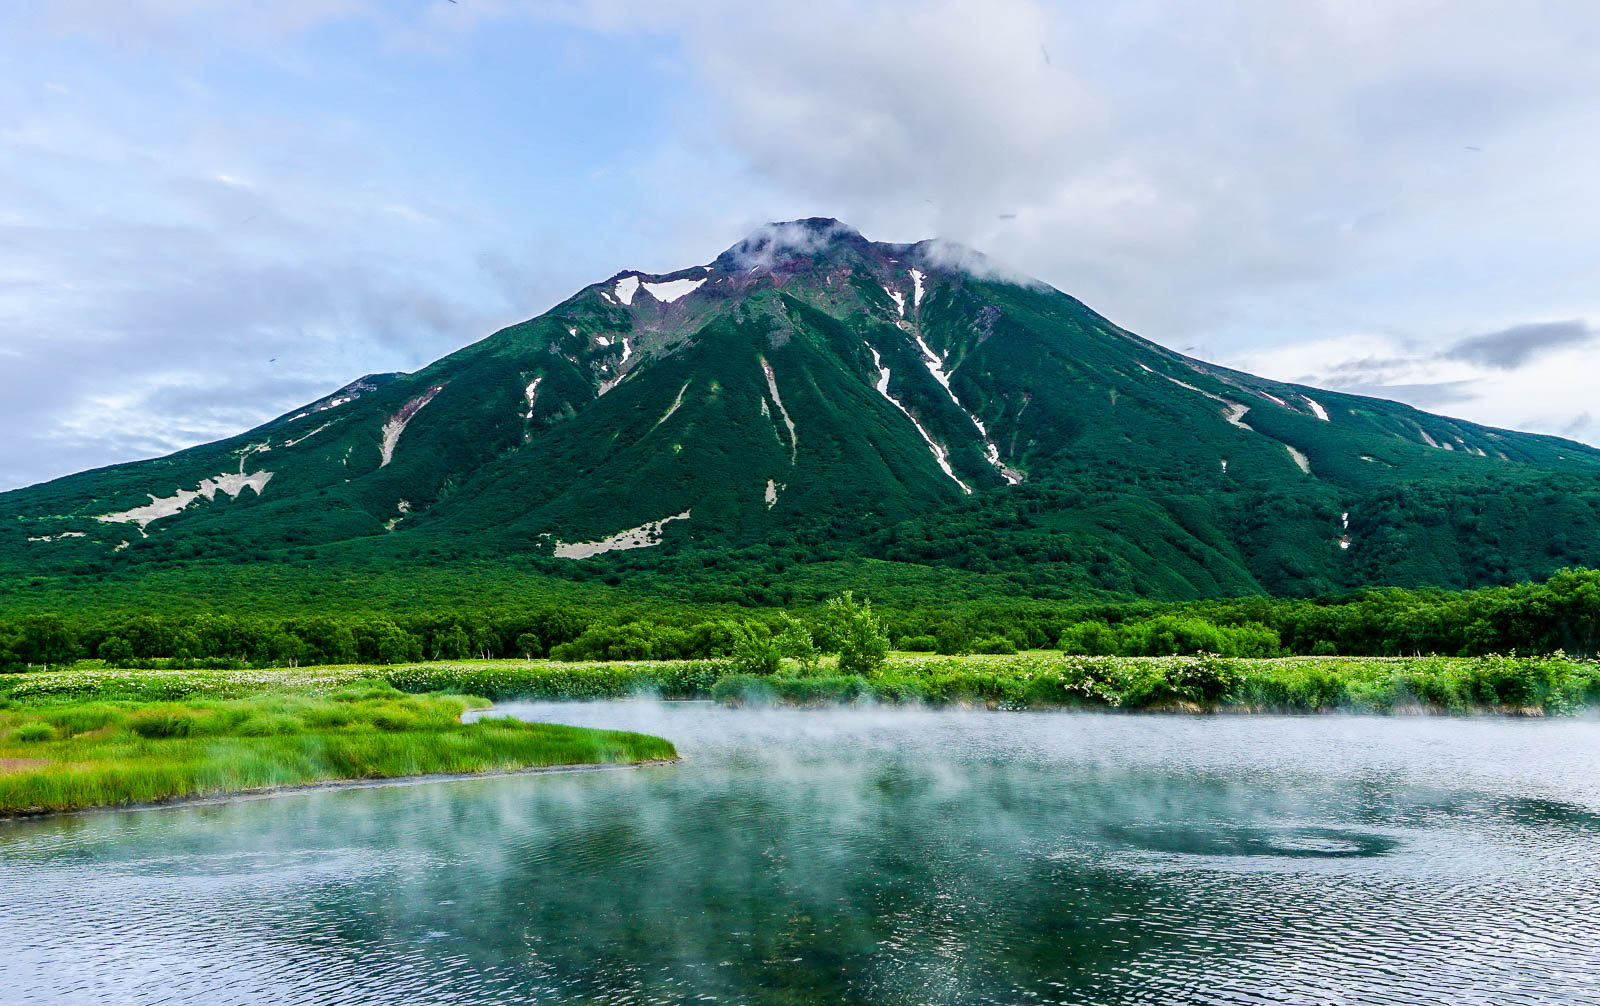 kamchatka-2015-khodutka-hot-springs-5